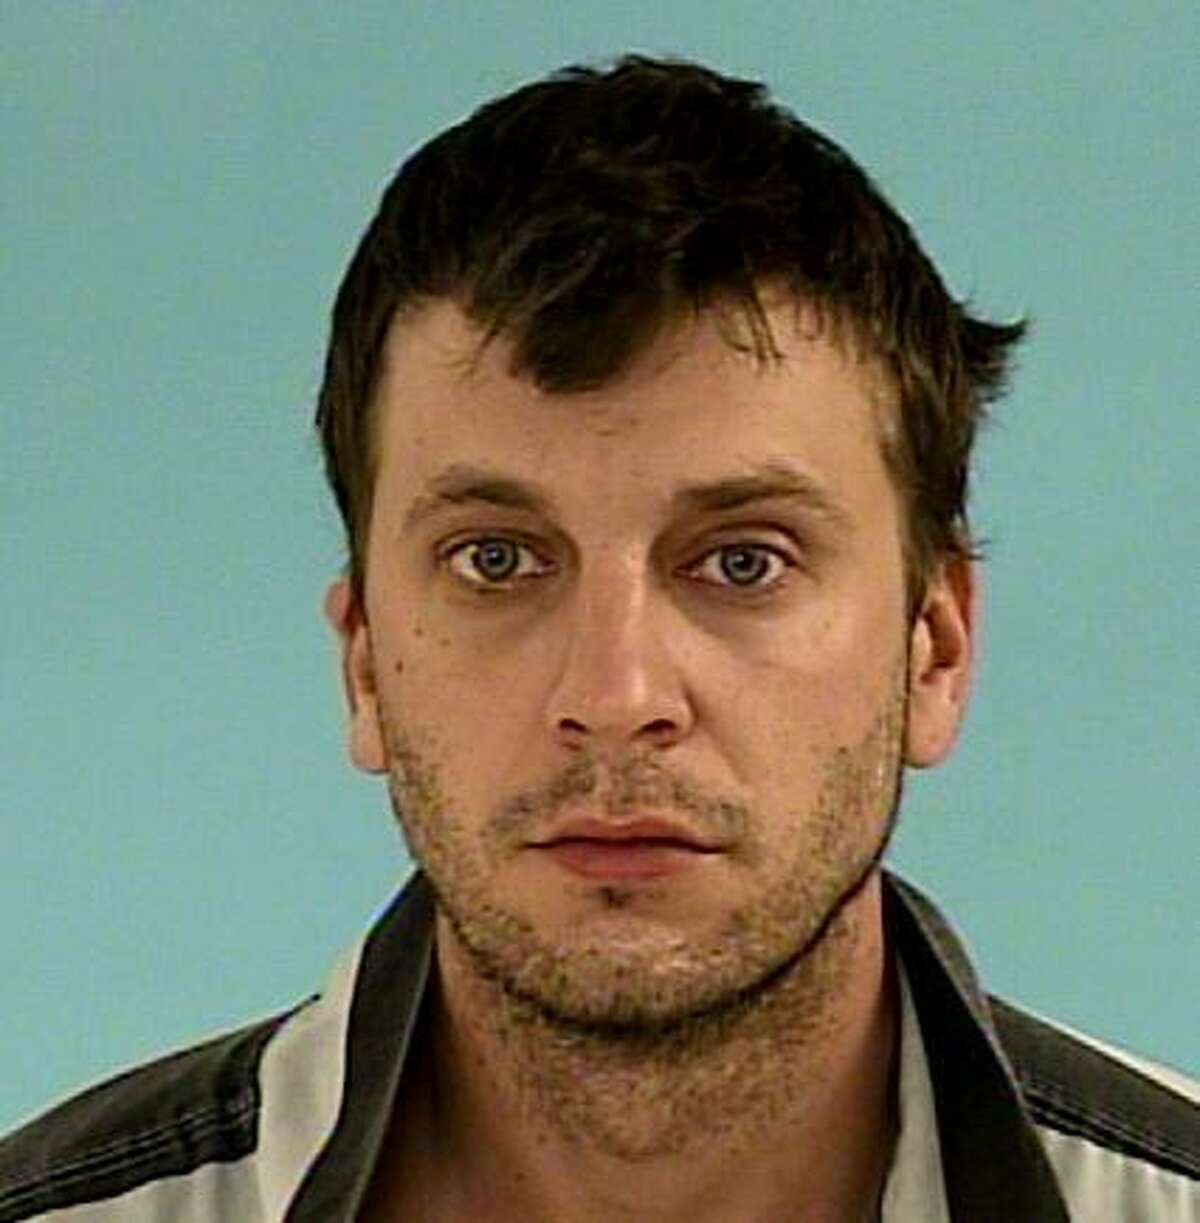 Ryan Bradley Miller is wanted by the Montgomery County Sheriff's Office on a charge of driving while intoxicated.